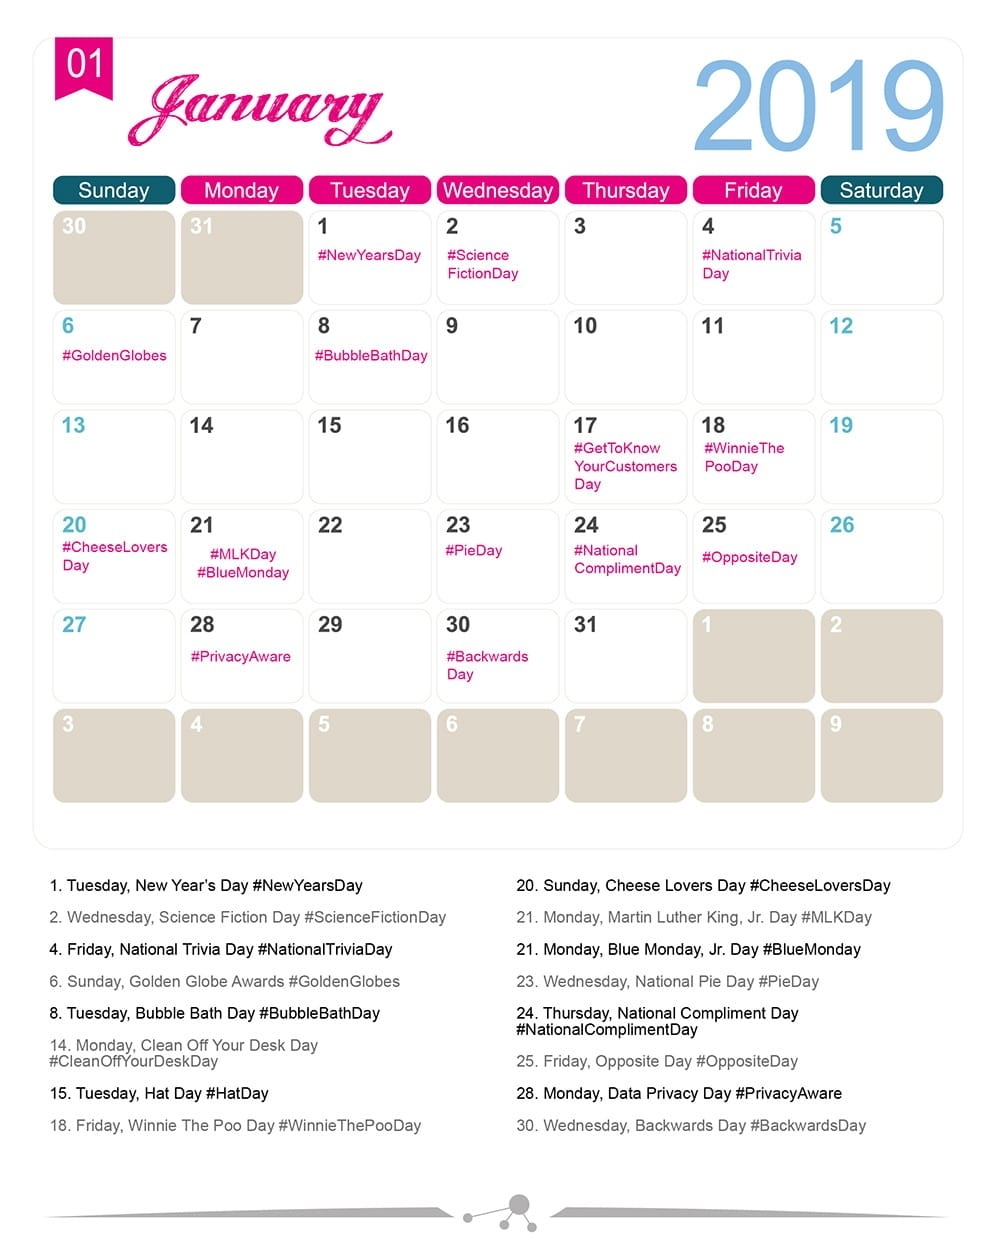 The 2019 Social Media Holiday Calendar Make A Website Hub